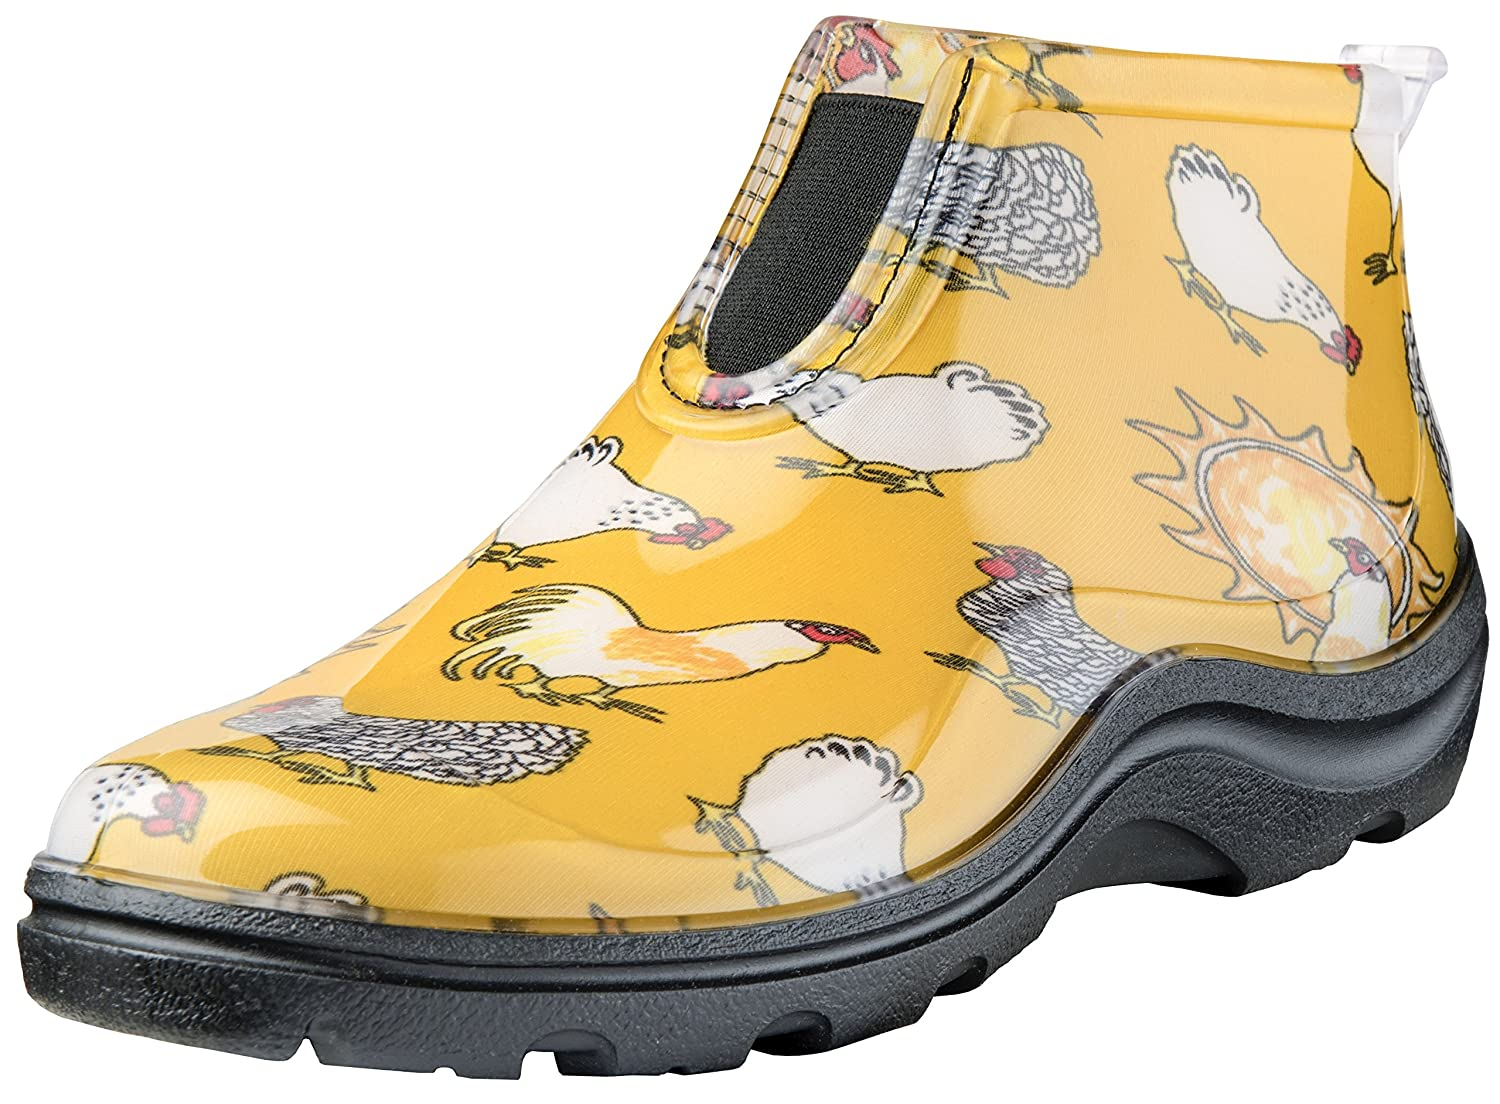 Sloggers Women's Waterproof Rain and Garden Ankle Boot with Comfort Insole, Chickens Daffodil Yellow, Size 8, Style 2841CDY08